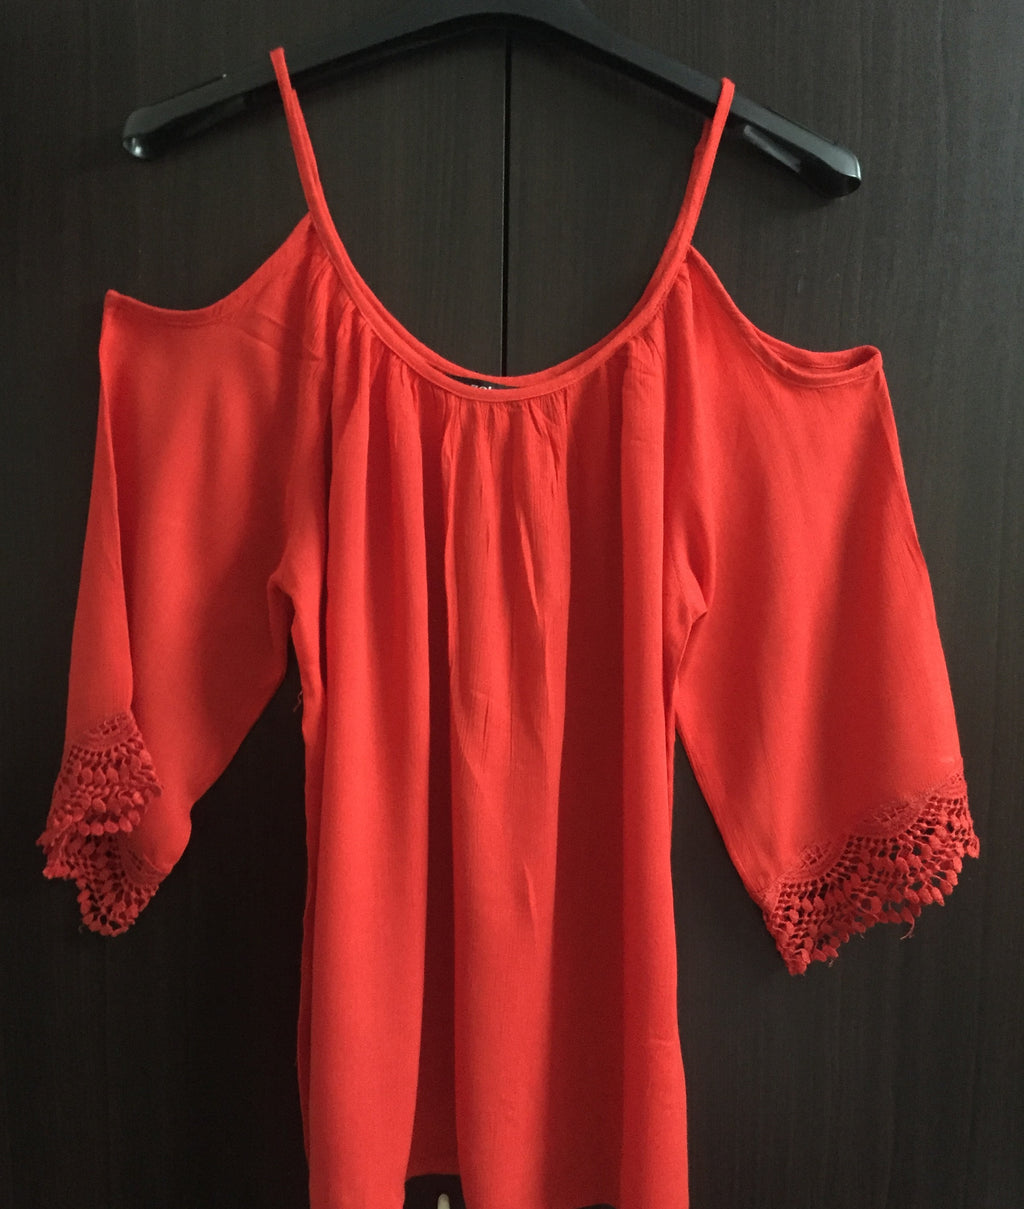 Cold - Shoulder Top - Bright Red